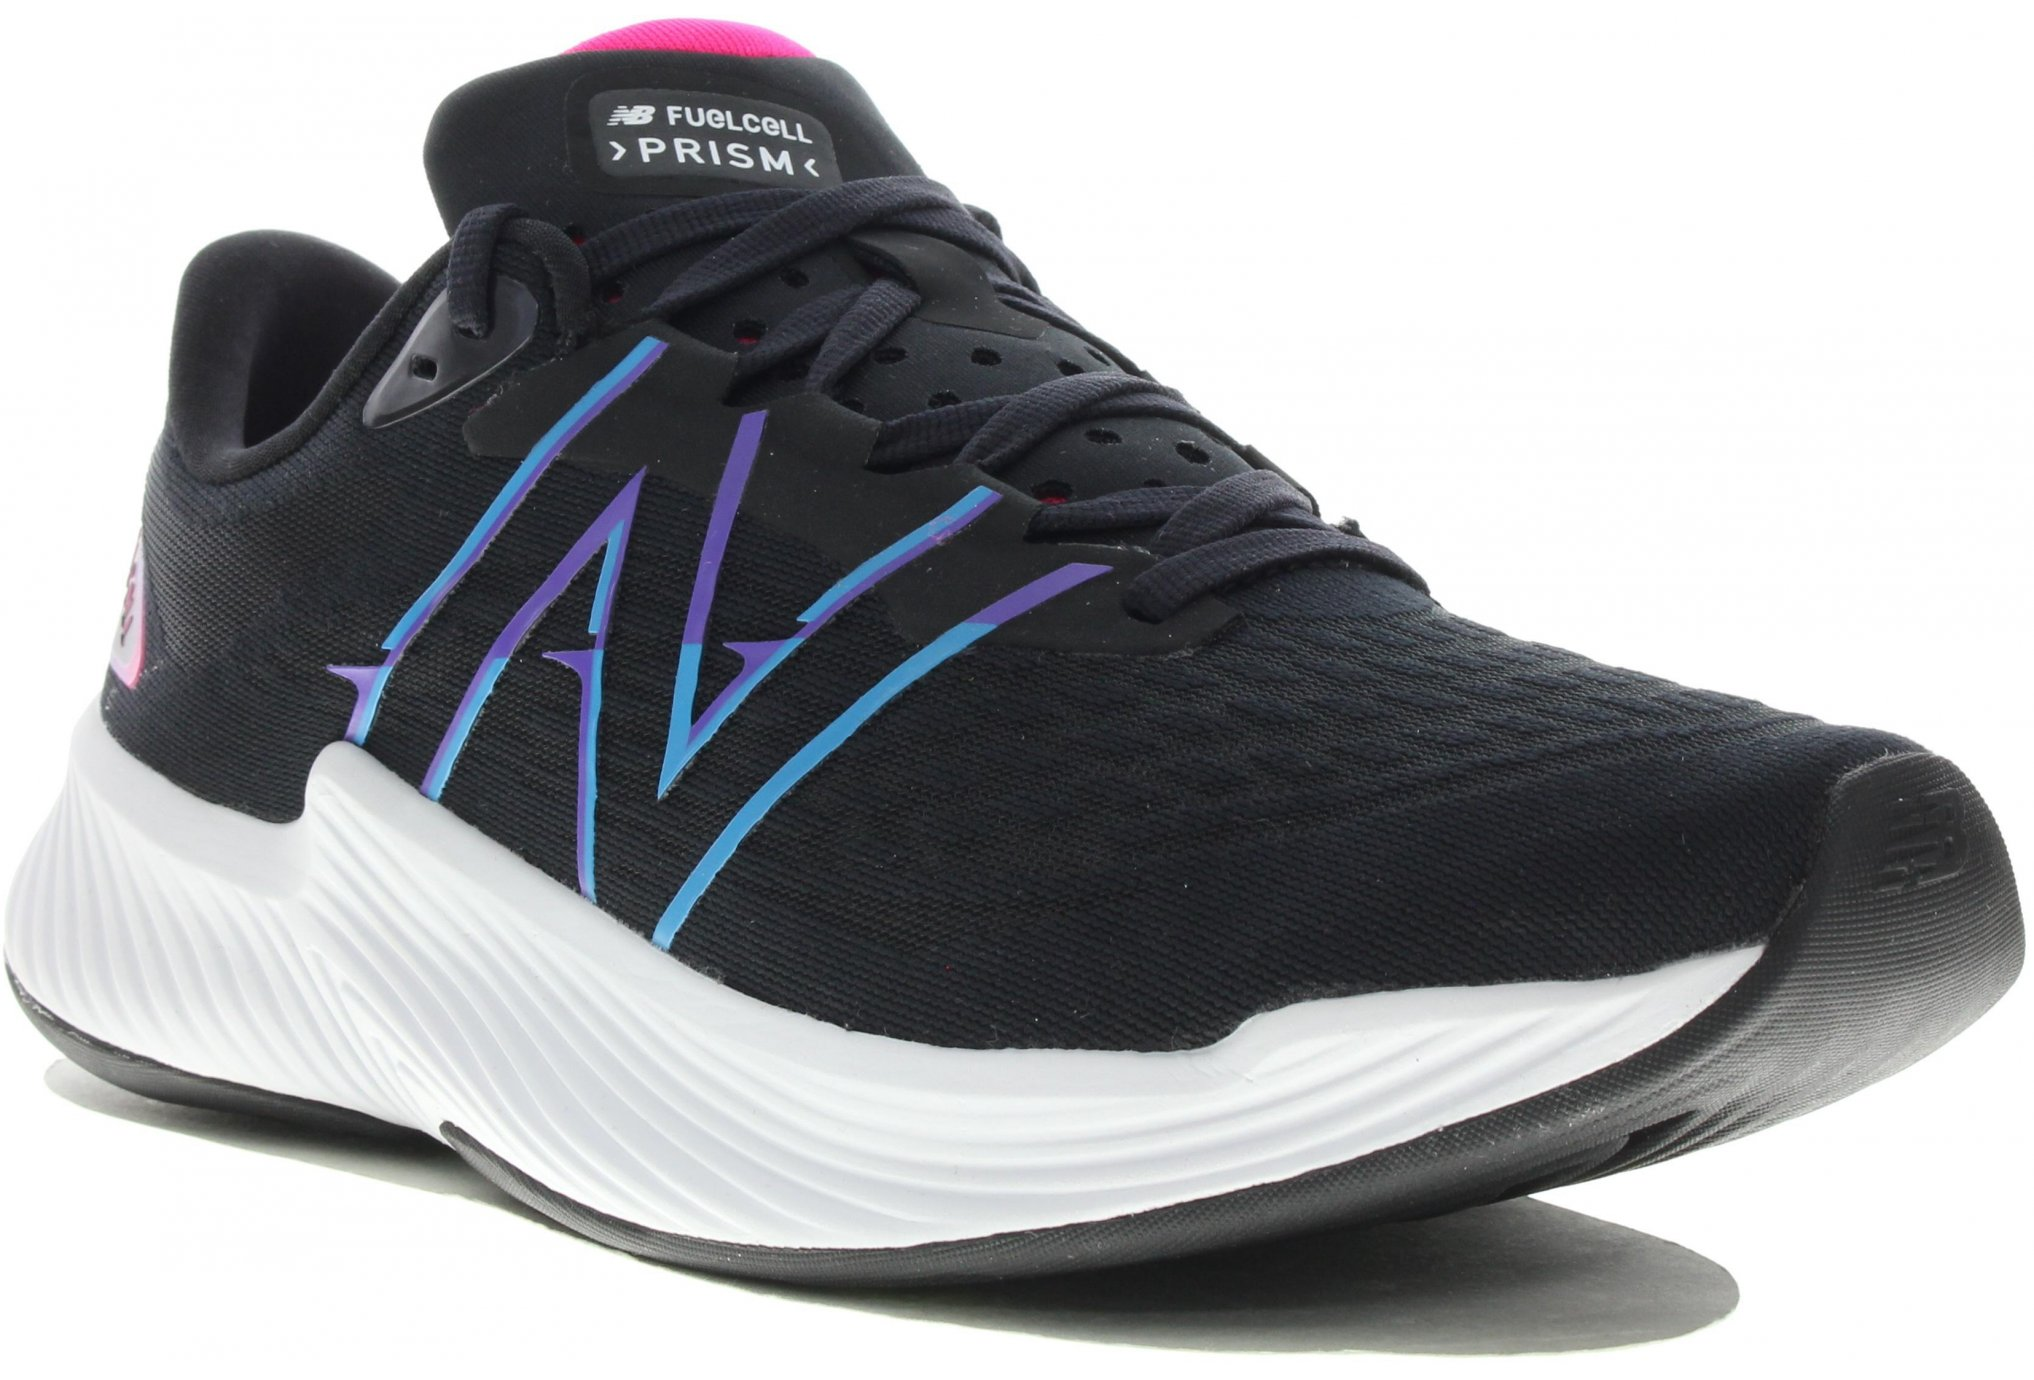 New Balance FuelCell Prism V2 W Chaussures running femme